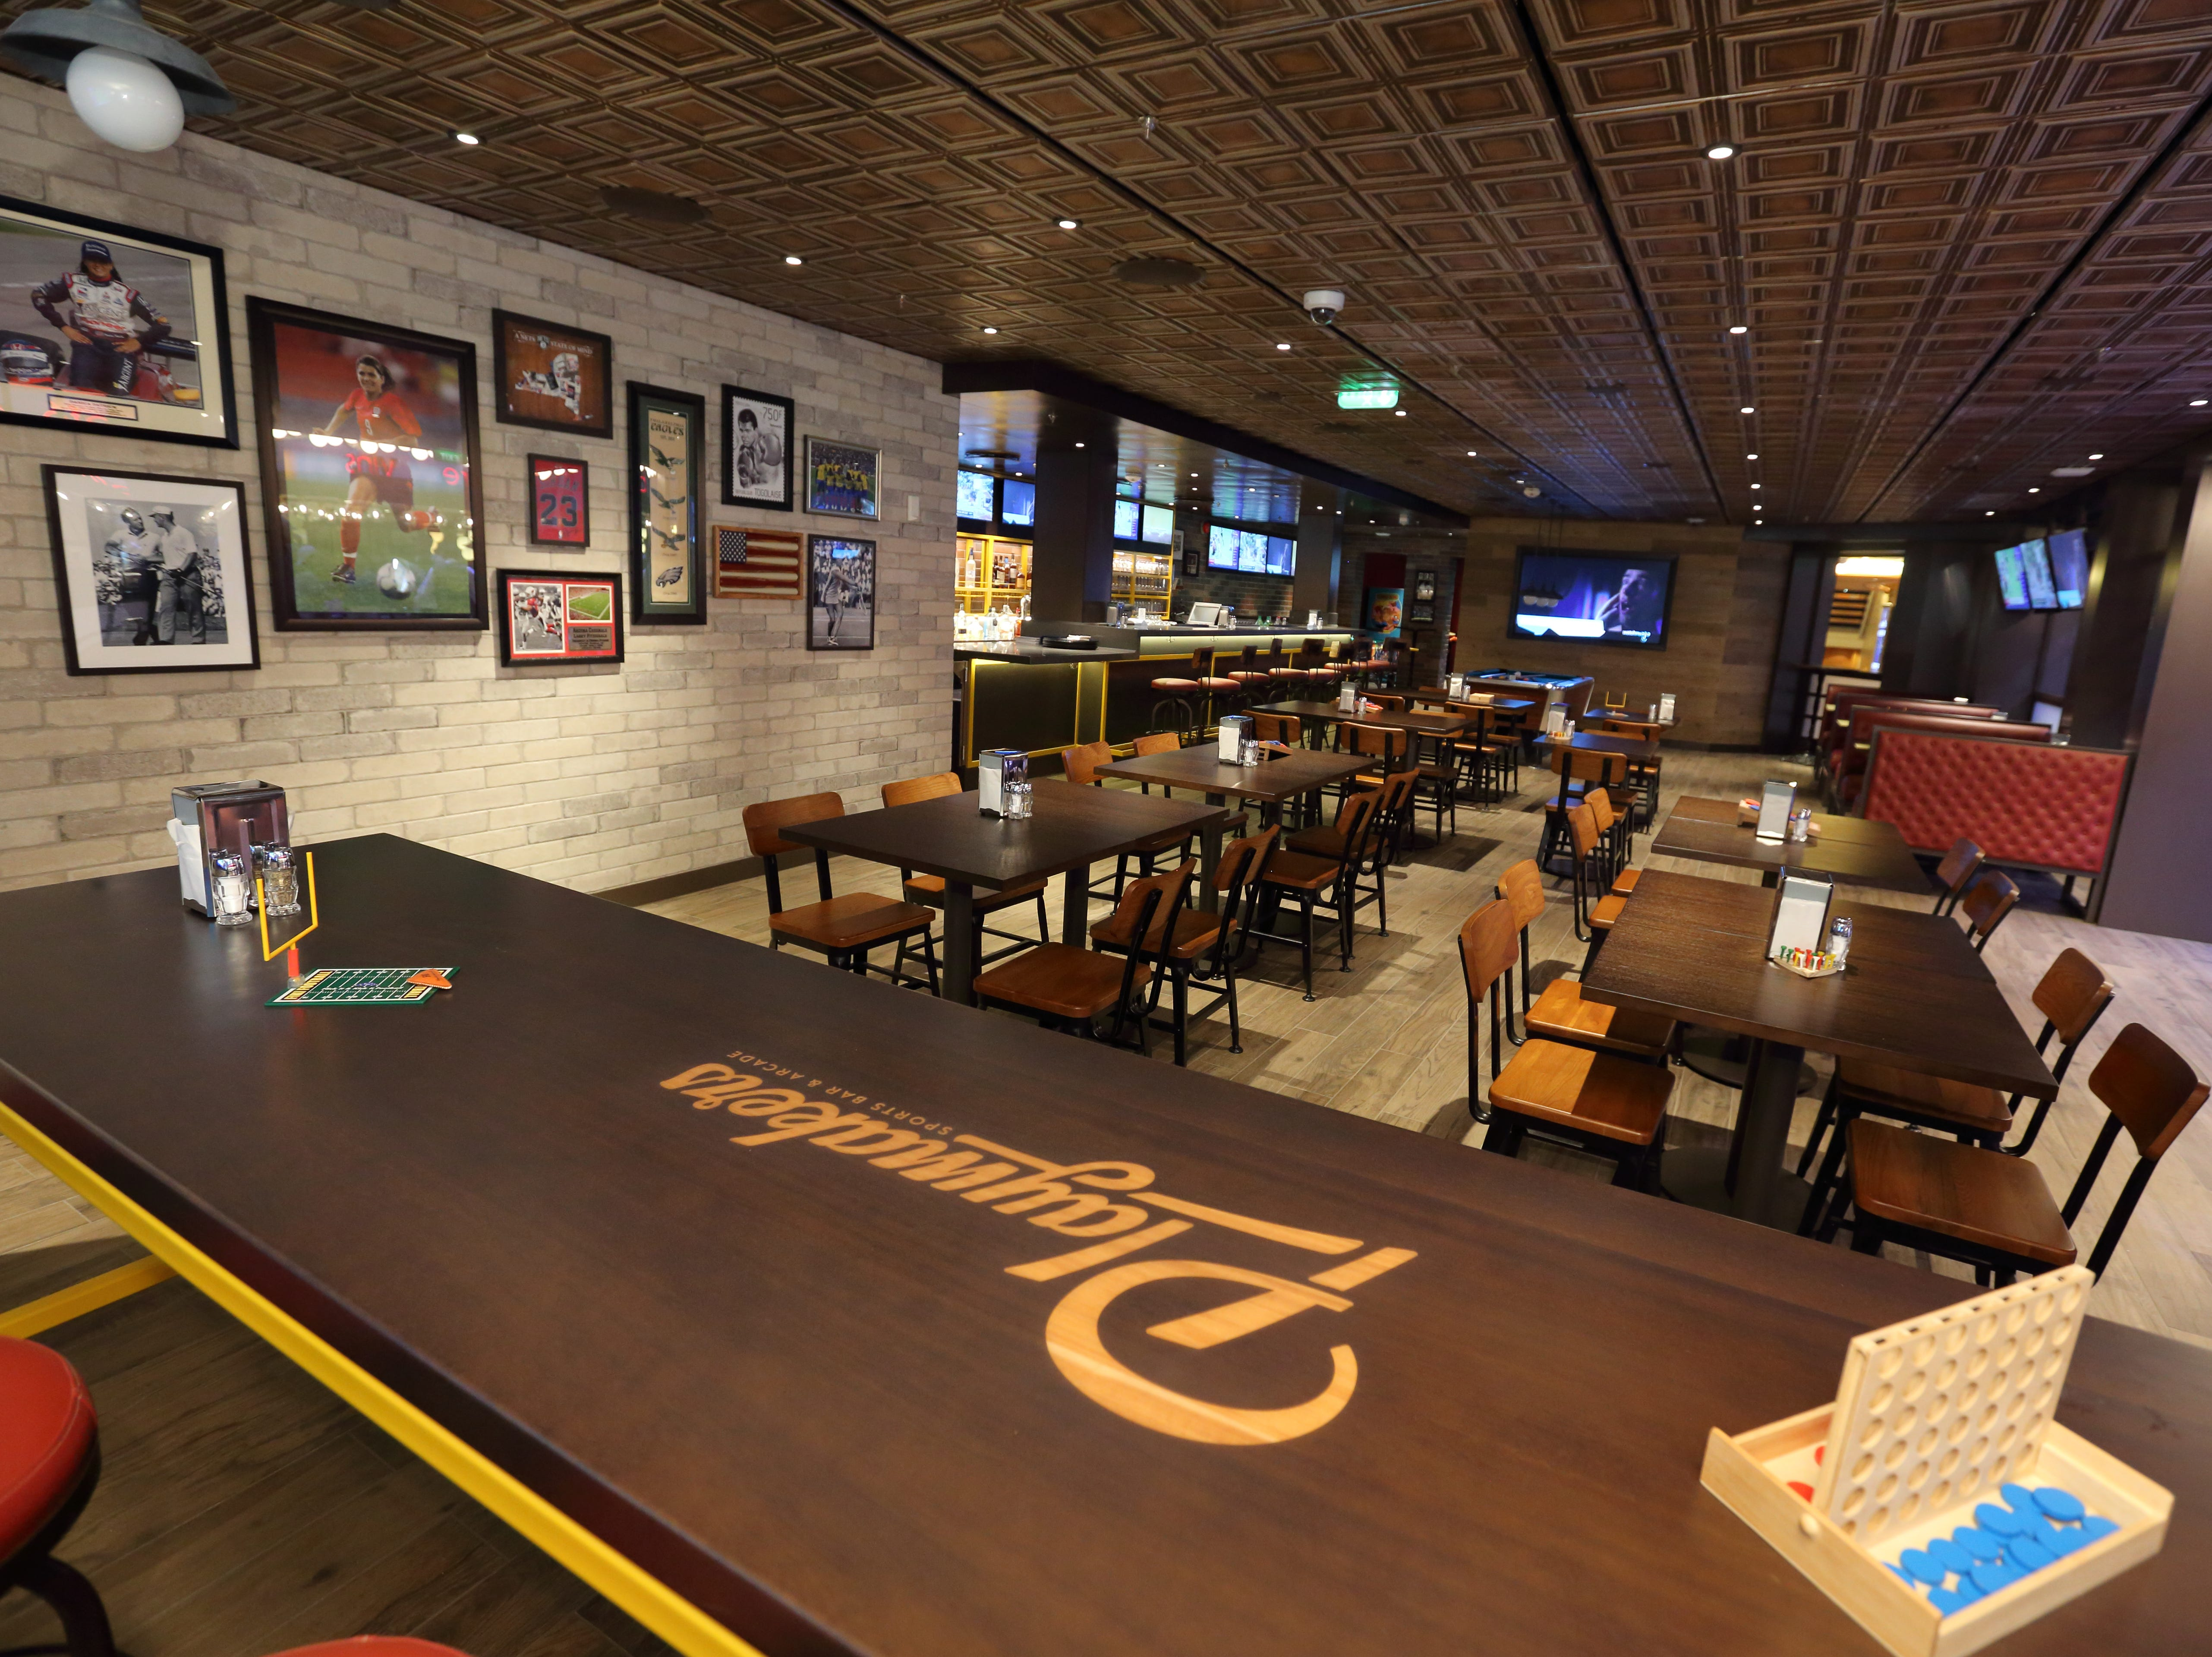 Sports bars at sea have been getting an overhaul in recent years. Here, the recently unveiled Playmakers Sports Bar & Arcade on Royal Caribbean's revamped Mariner of the Seas. Improved satellite technology is allowing cruise lines to pipe in a wide array of live sporting events to such venues.